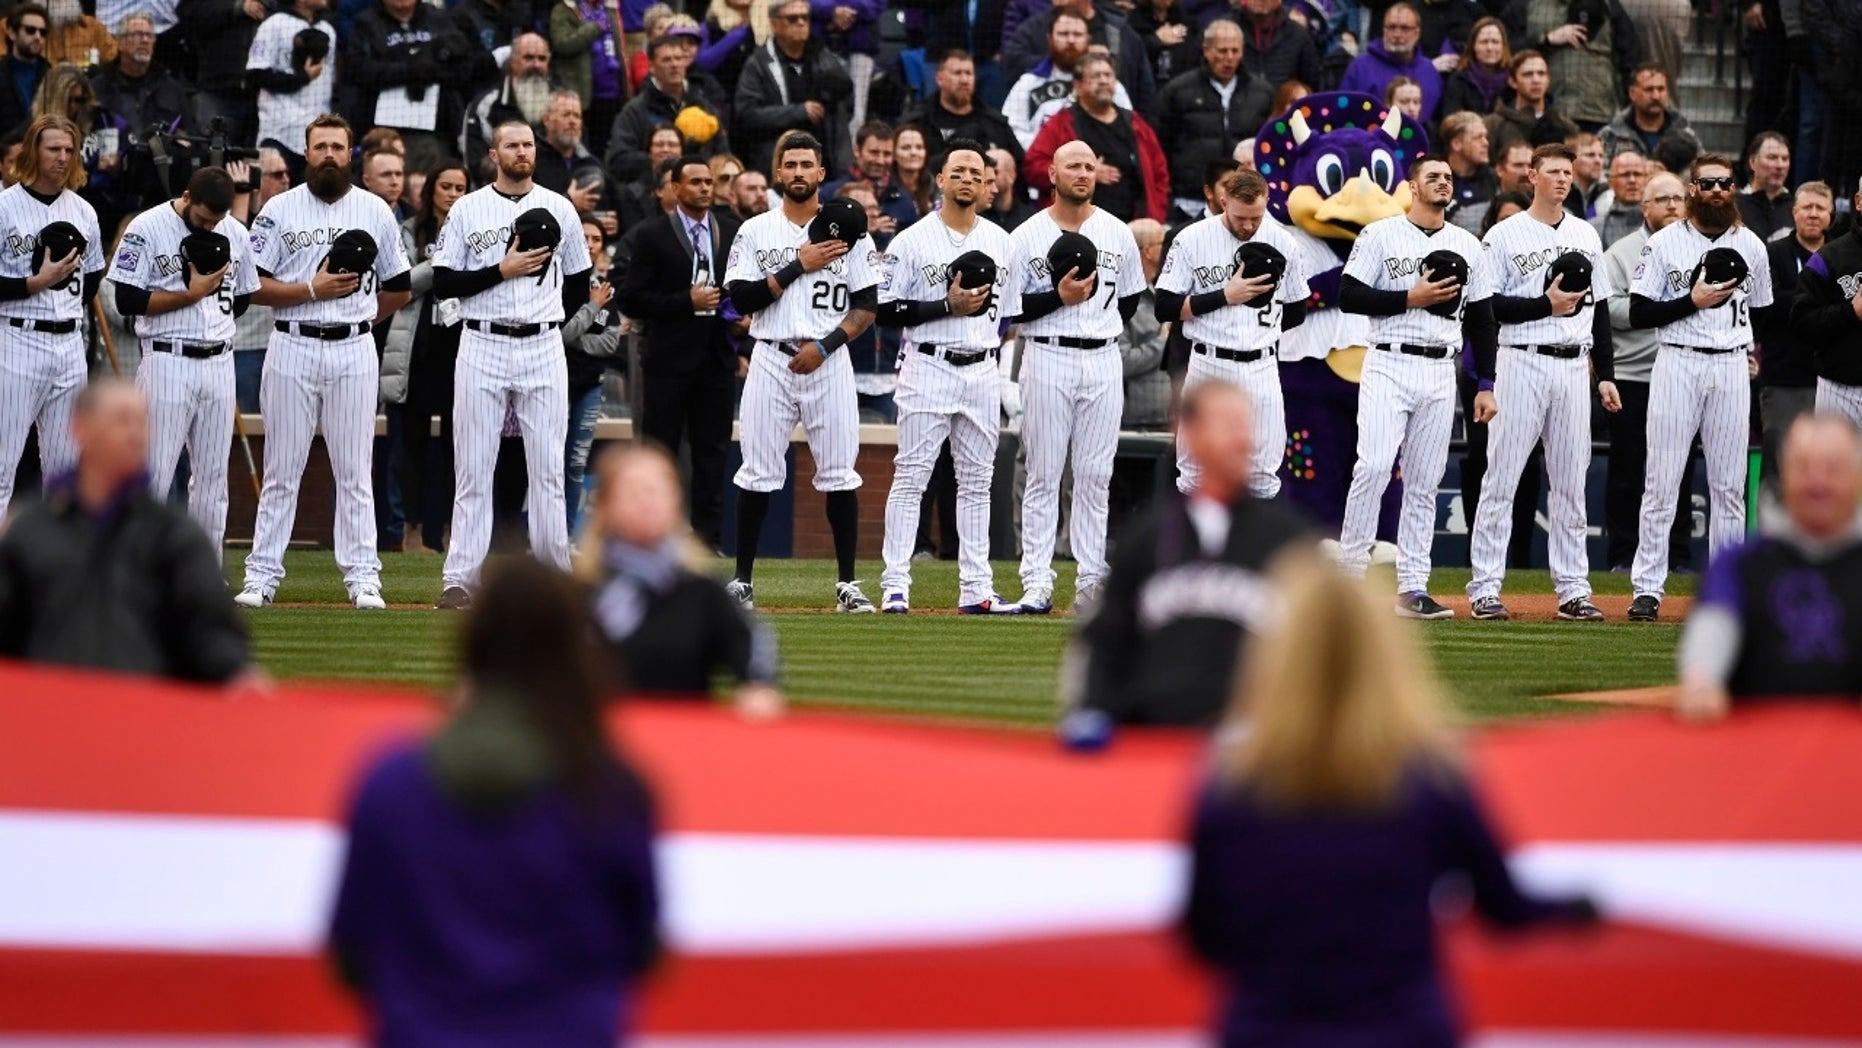 The Colorado Rockies seen here lining up before the national anthem.